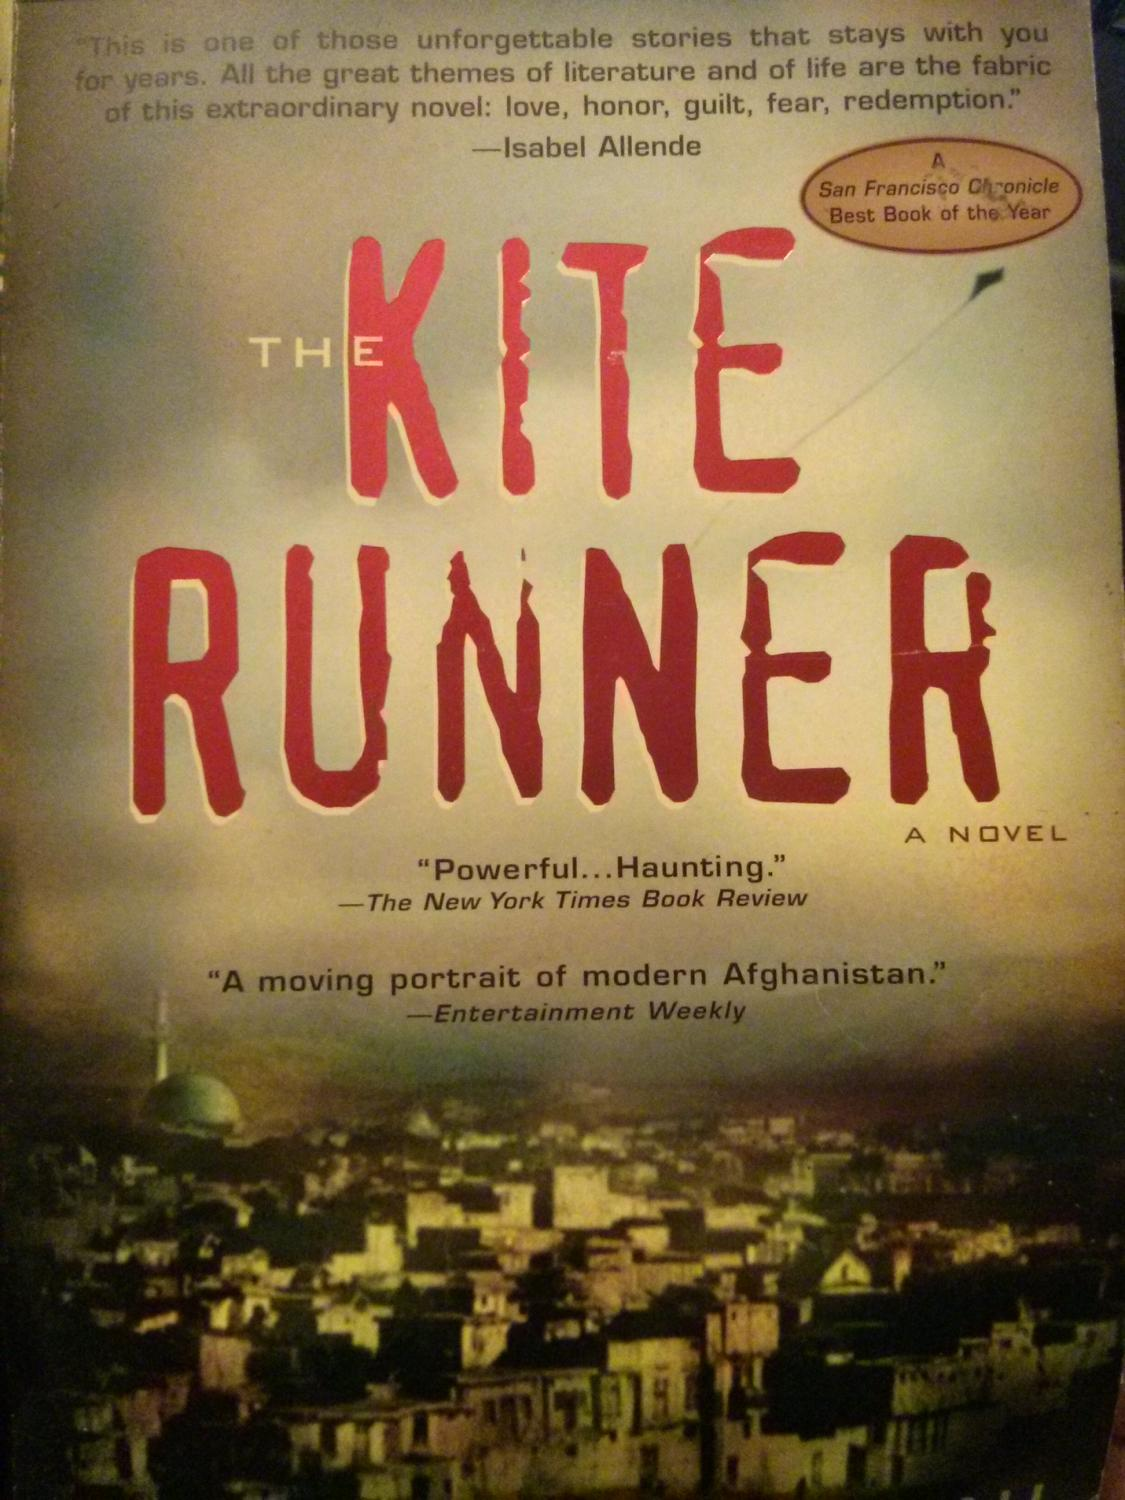 kite runner by hosseini first edition abebooks